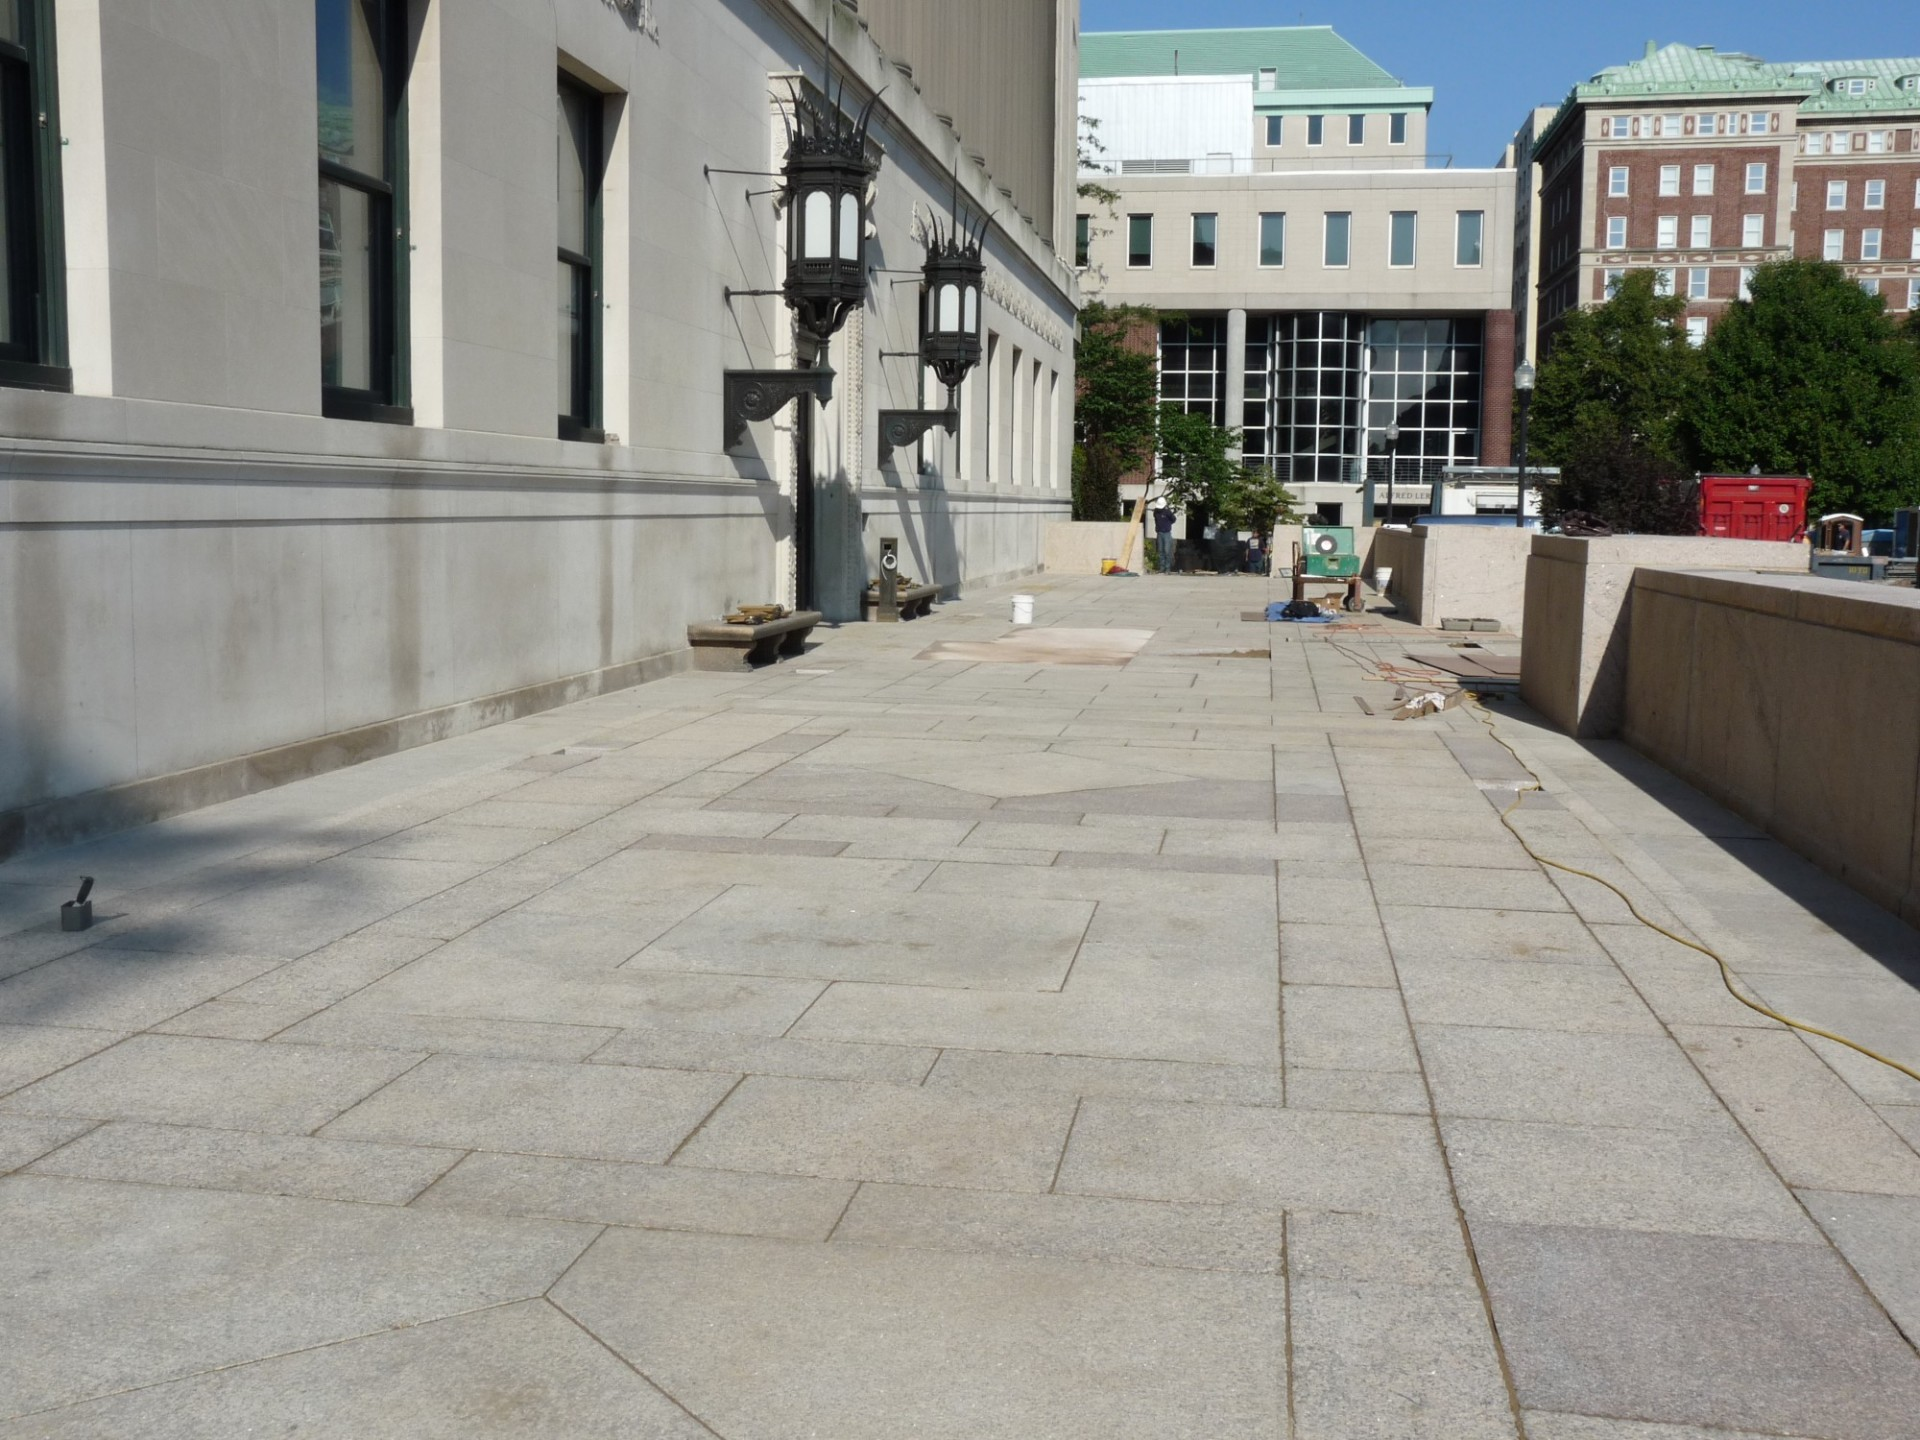 Butler Plaza granite pavers have been placed, readying for final touches and clean-up for the reopening of Butler Library's main entrance on Sept. 5. (Photo from August 31, 2017)